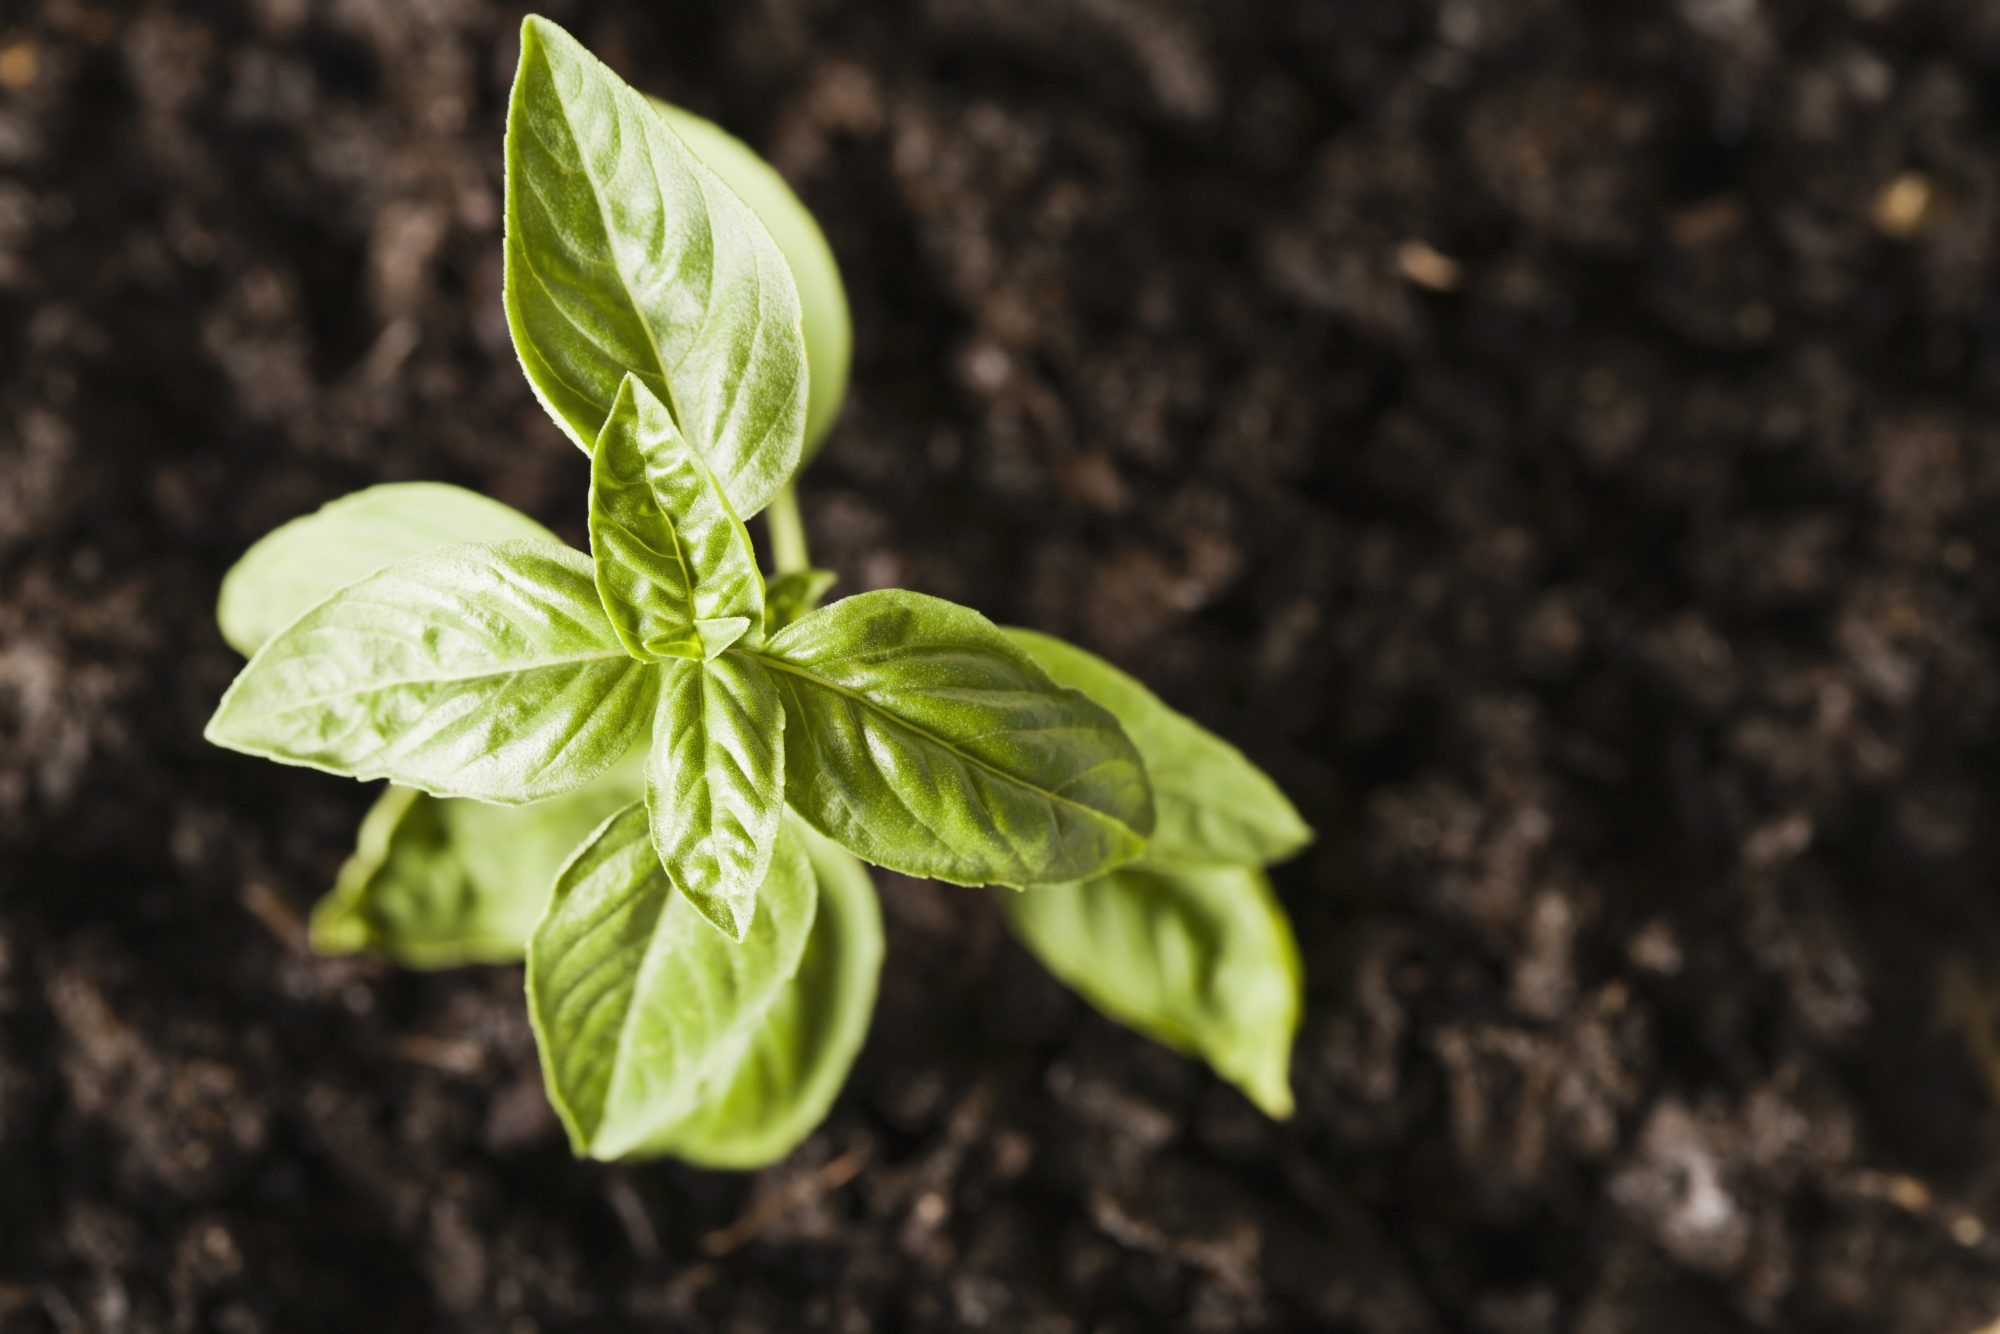 Basil in ground Getty 4/24/20